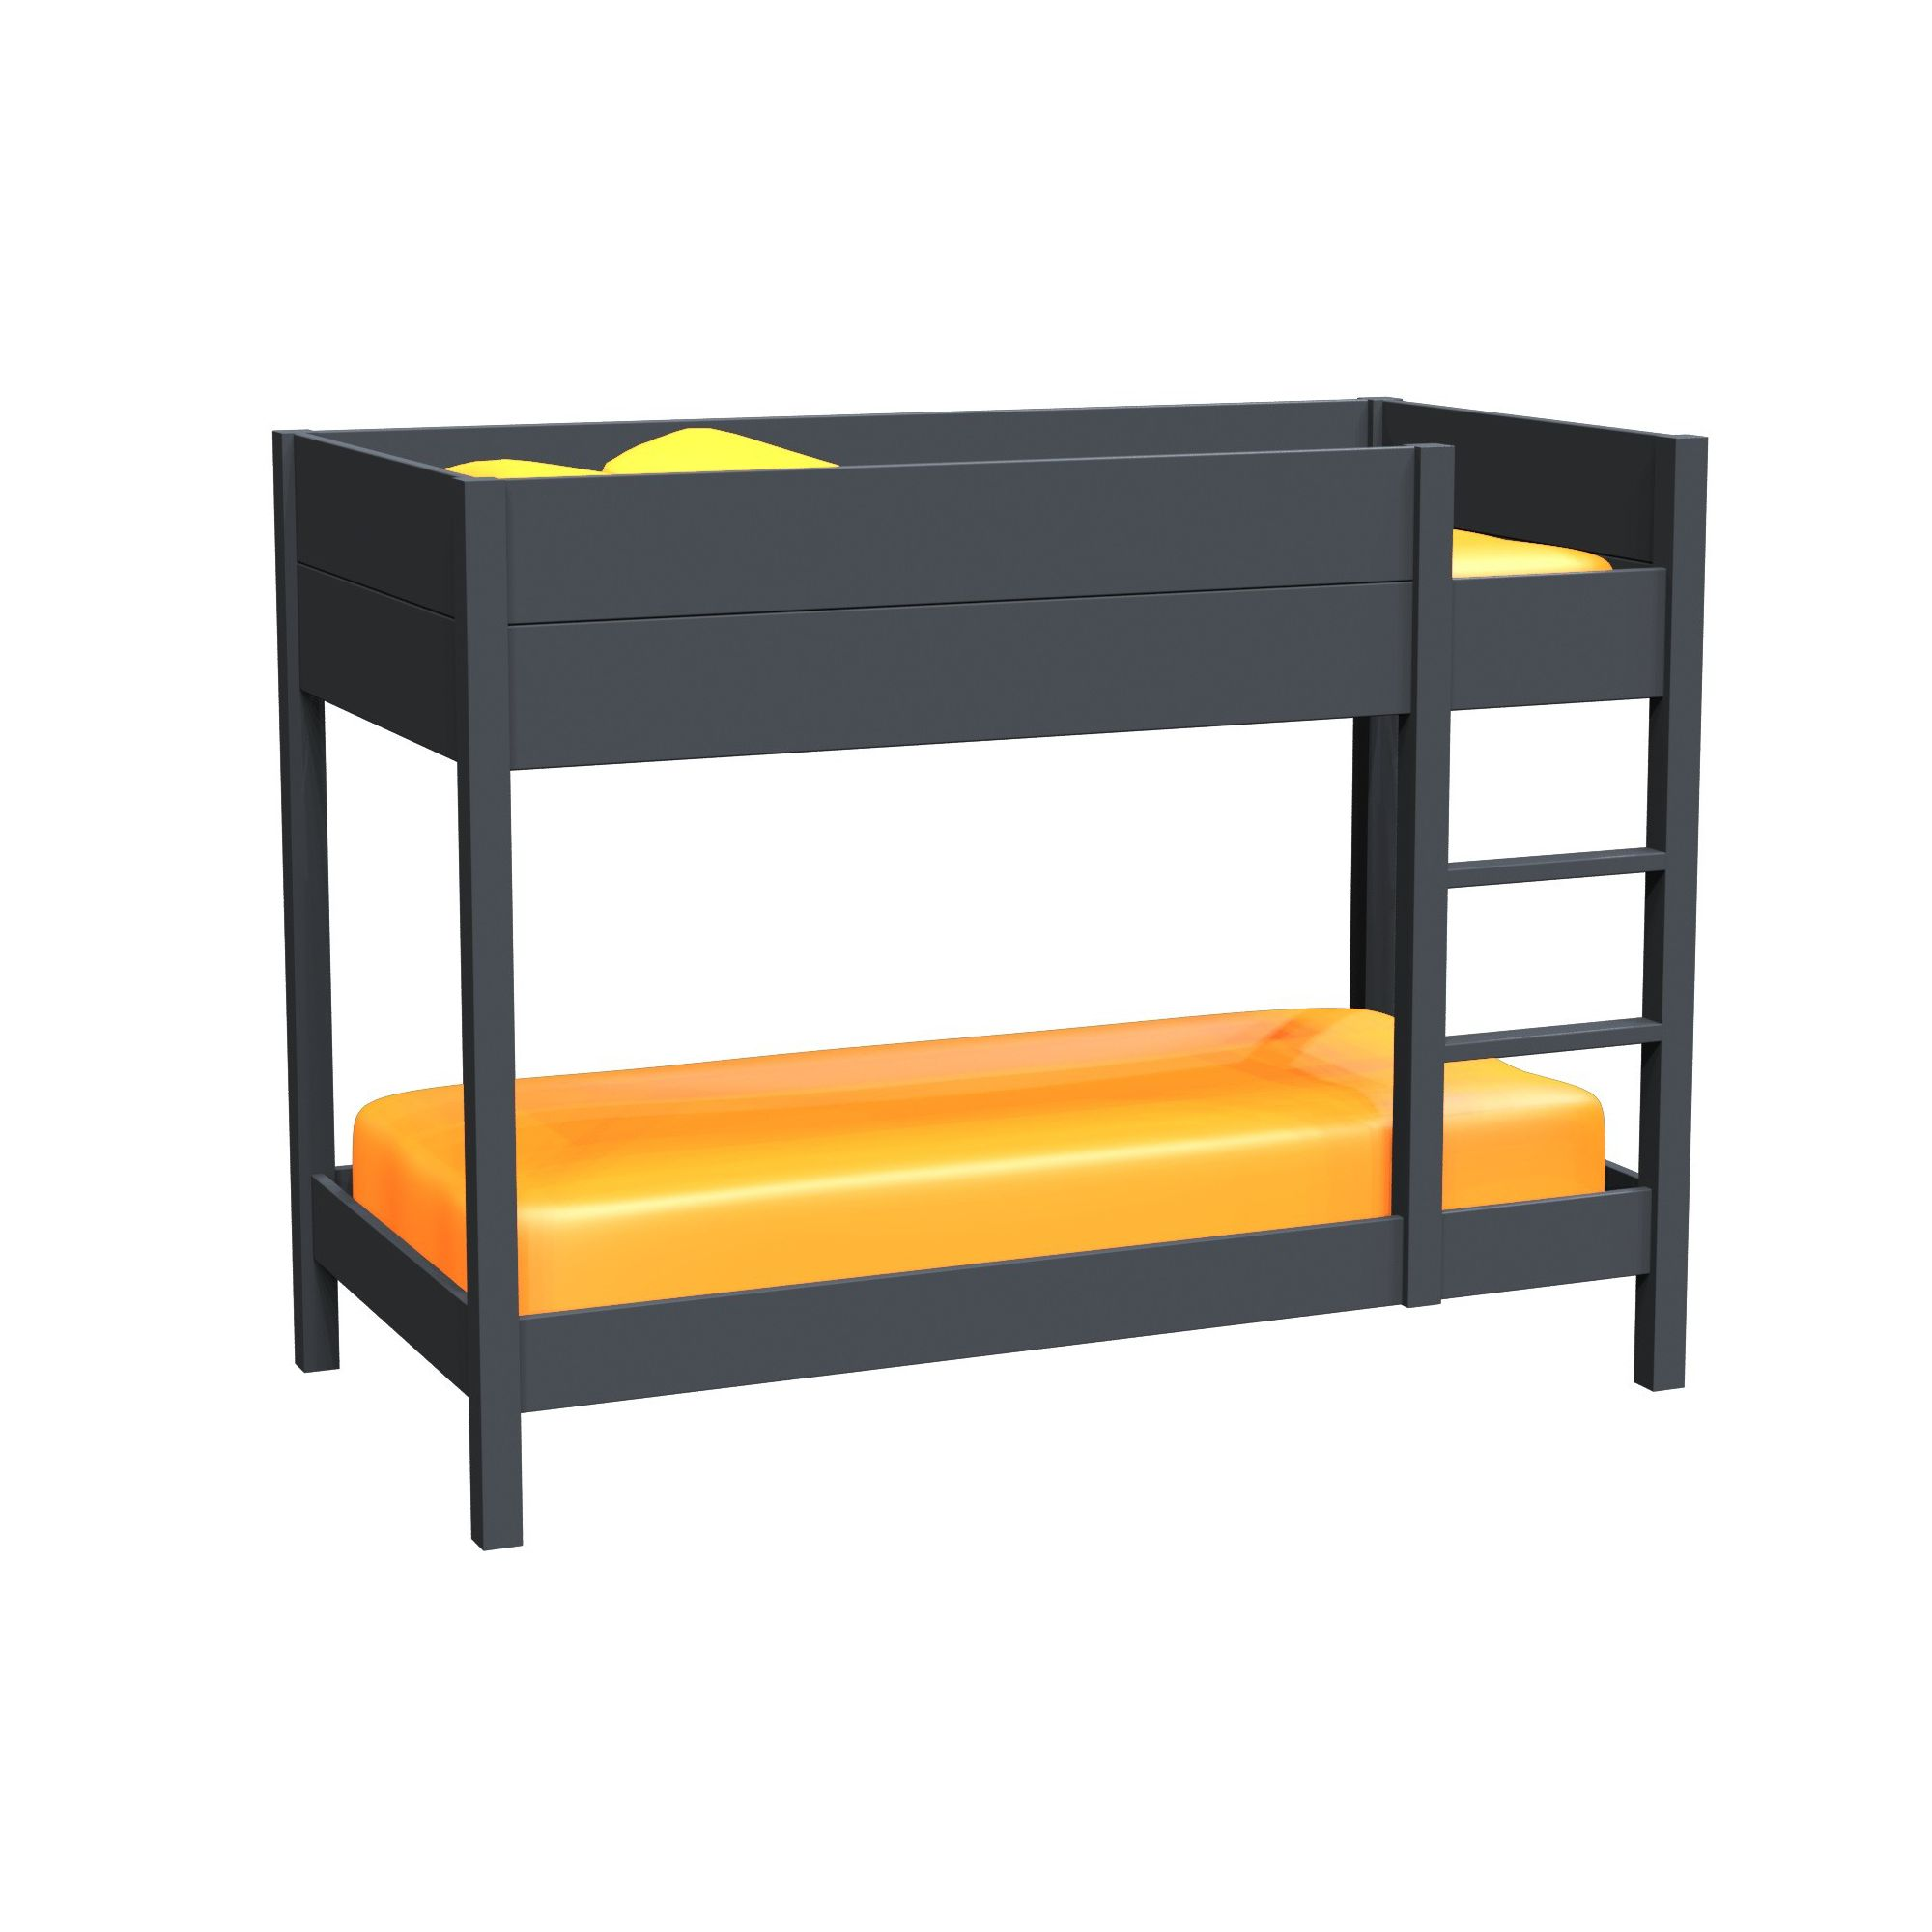 Altruna Moove Bunkbed - Dark Grey at Tesco Direct